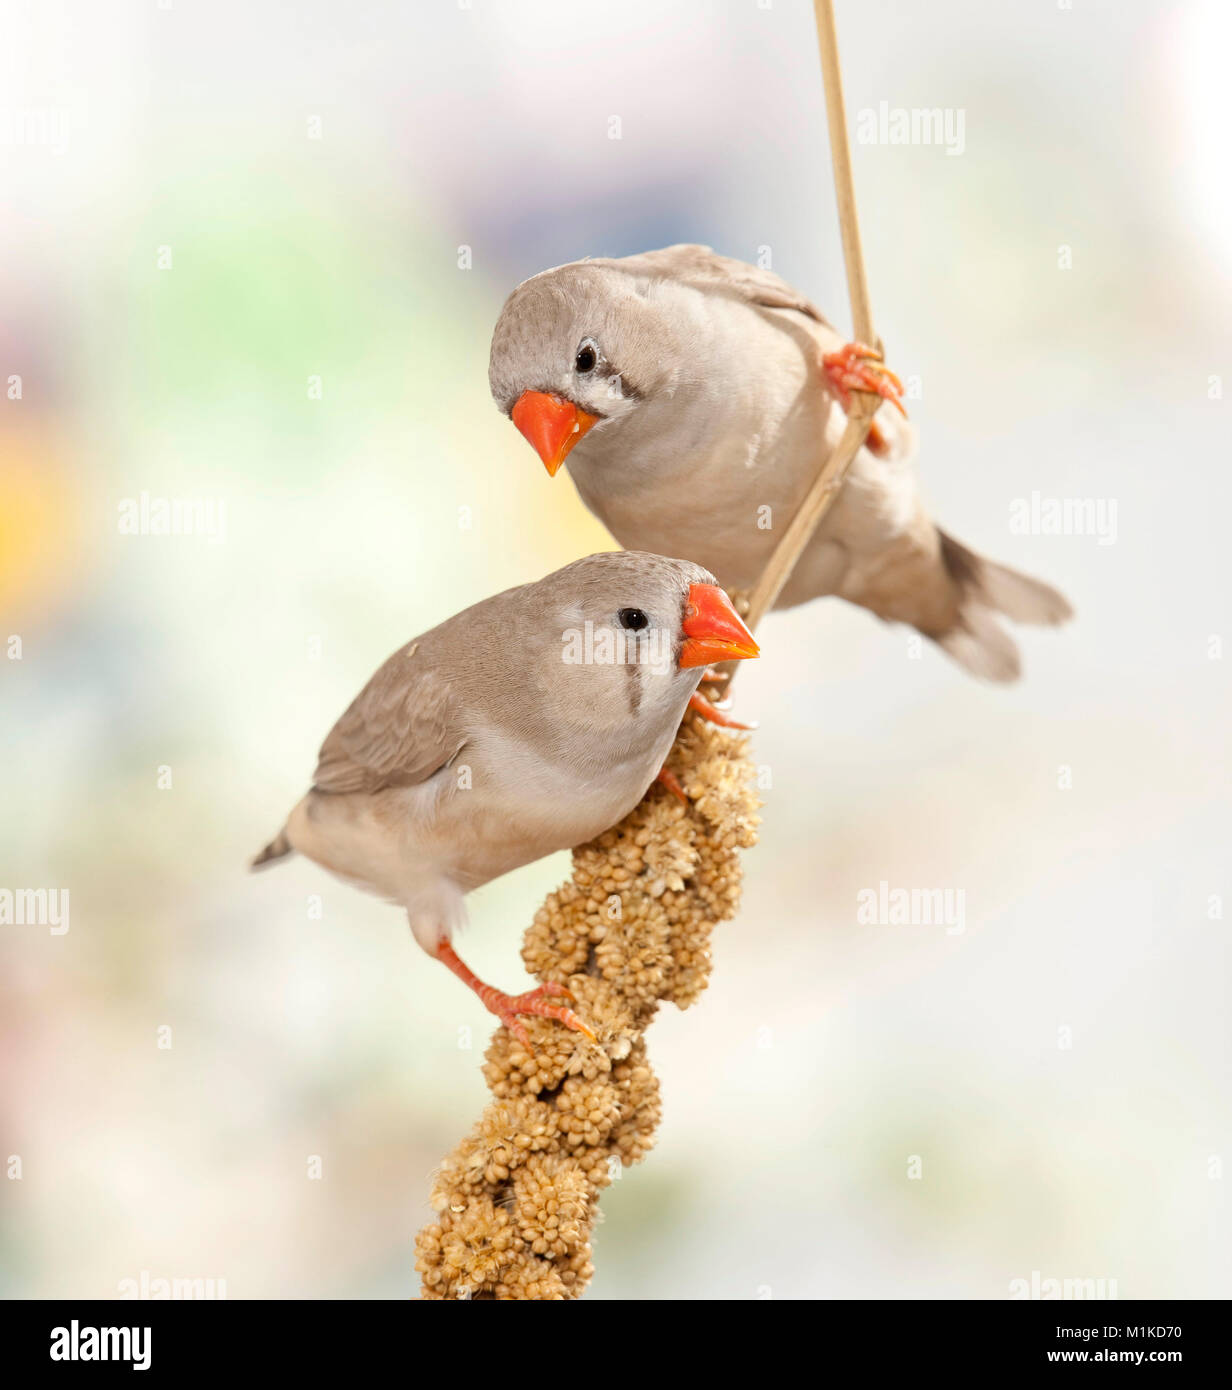 Zebra Finch (Taeniopygia guttata). Two birds perched on foxtail millet - Stock Image